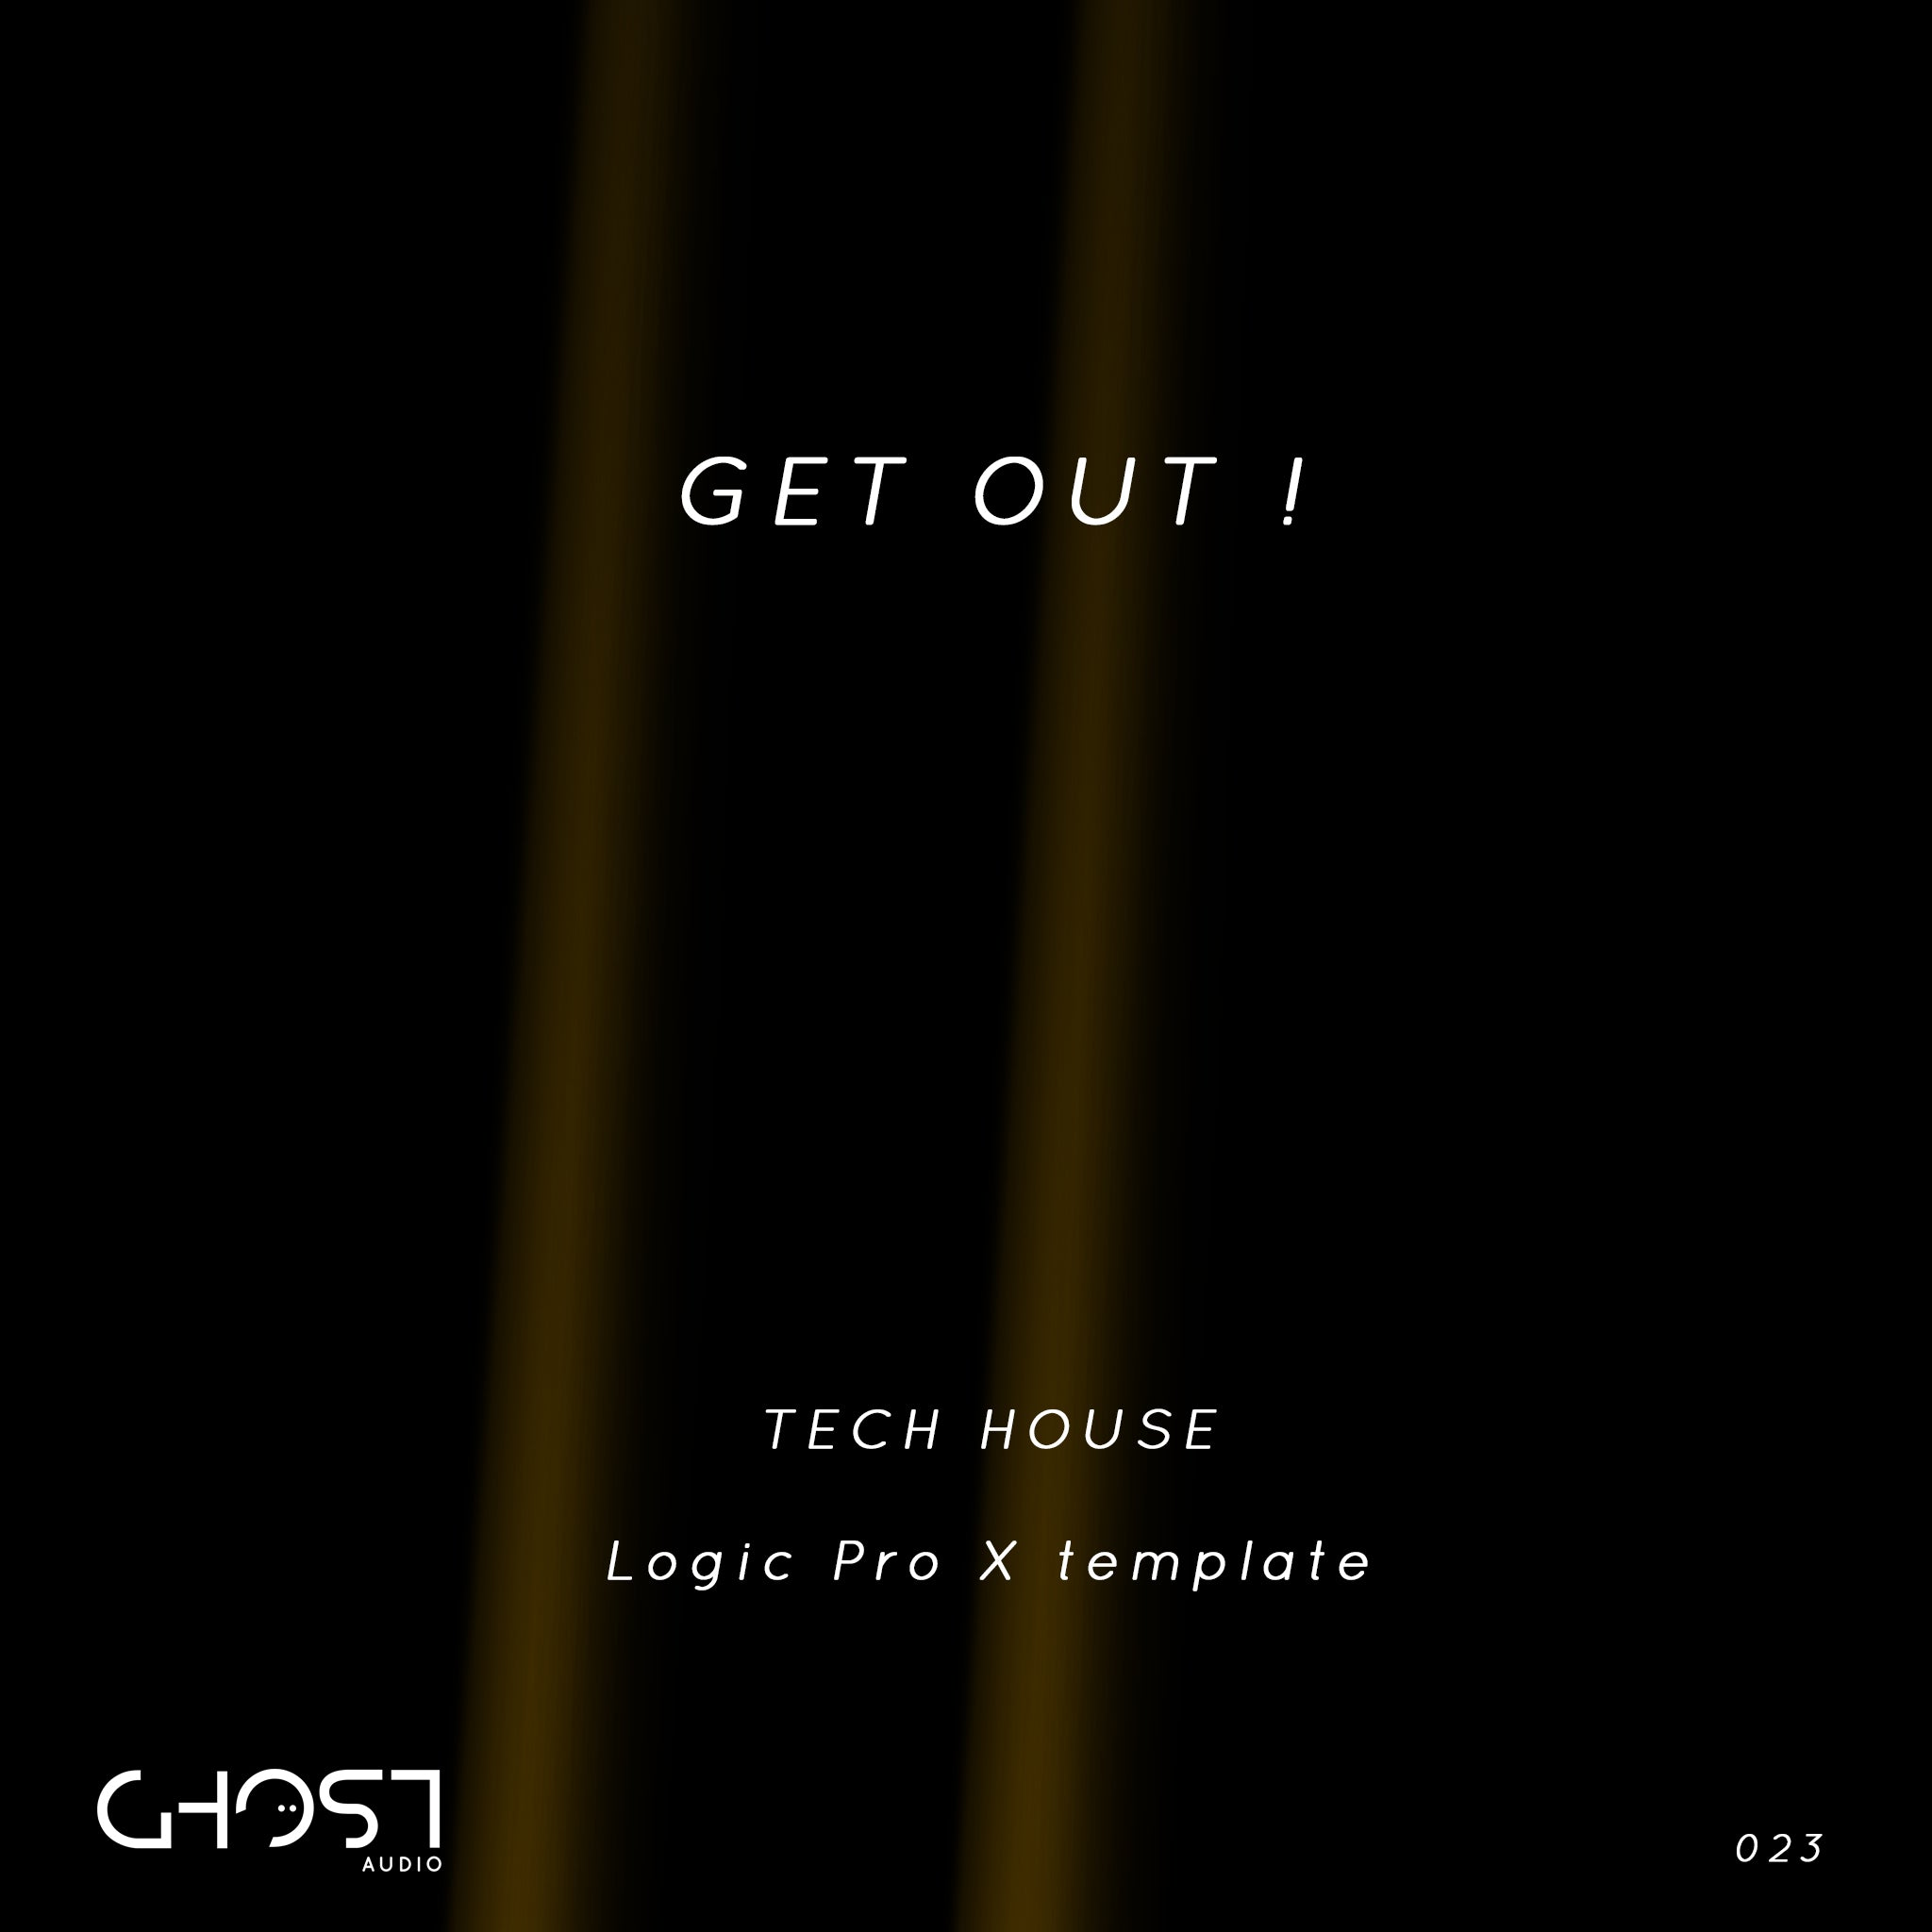 GET OUT ( TECH HOUSE - LOGIC PRO X TEMPLATE )